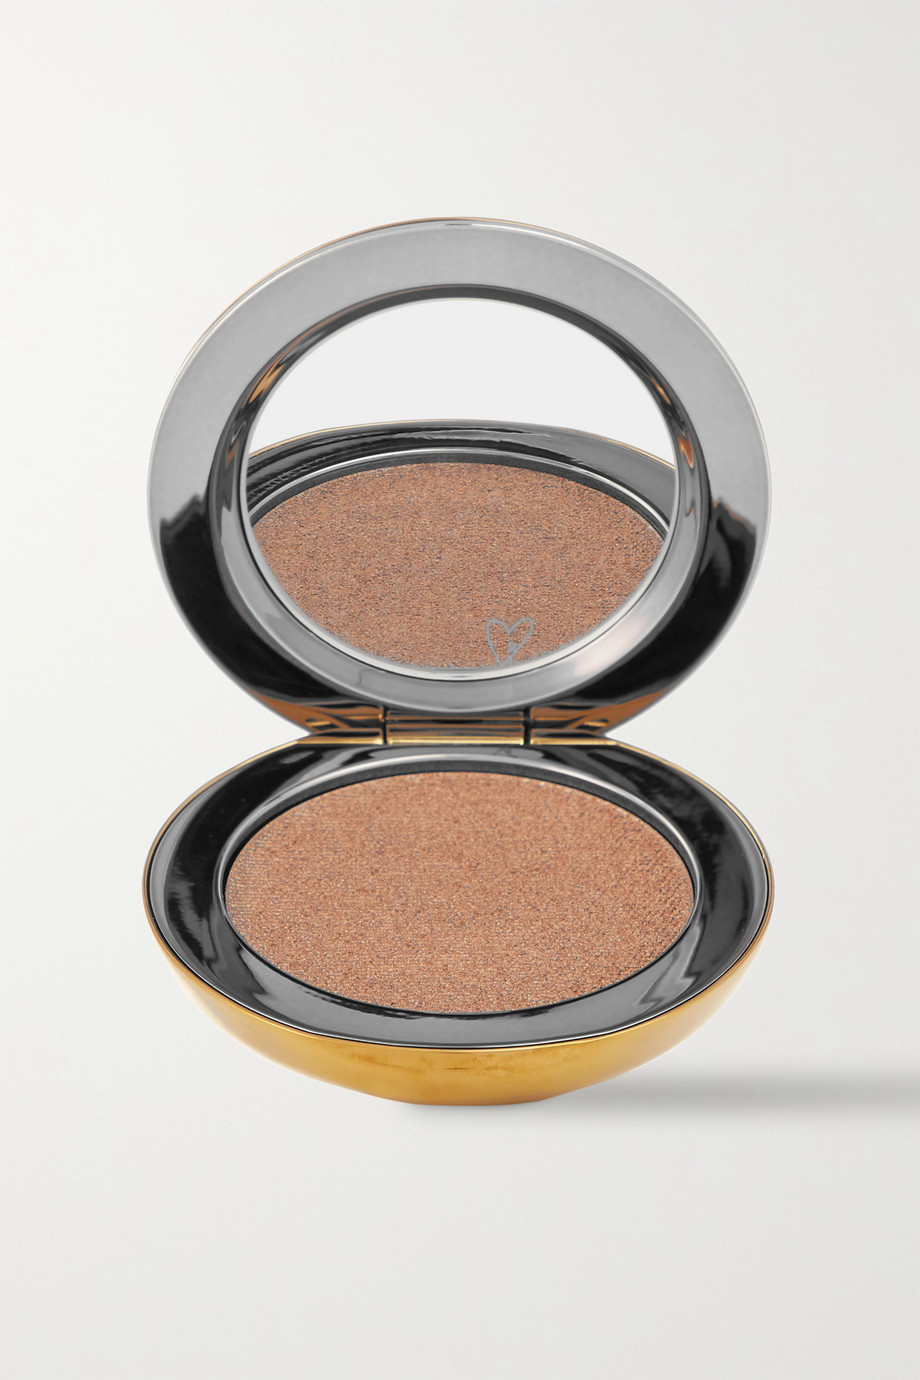 Westman Atelier Super Loaded Tinted Highlight - Peau de Soleil